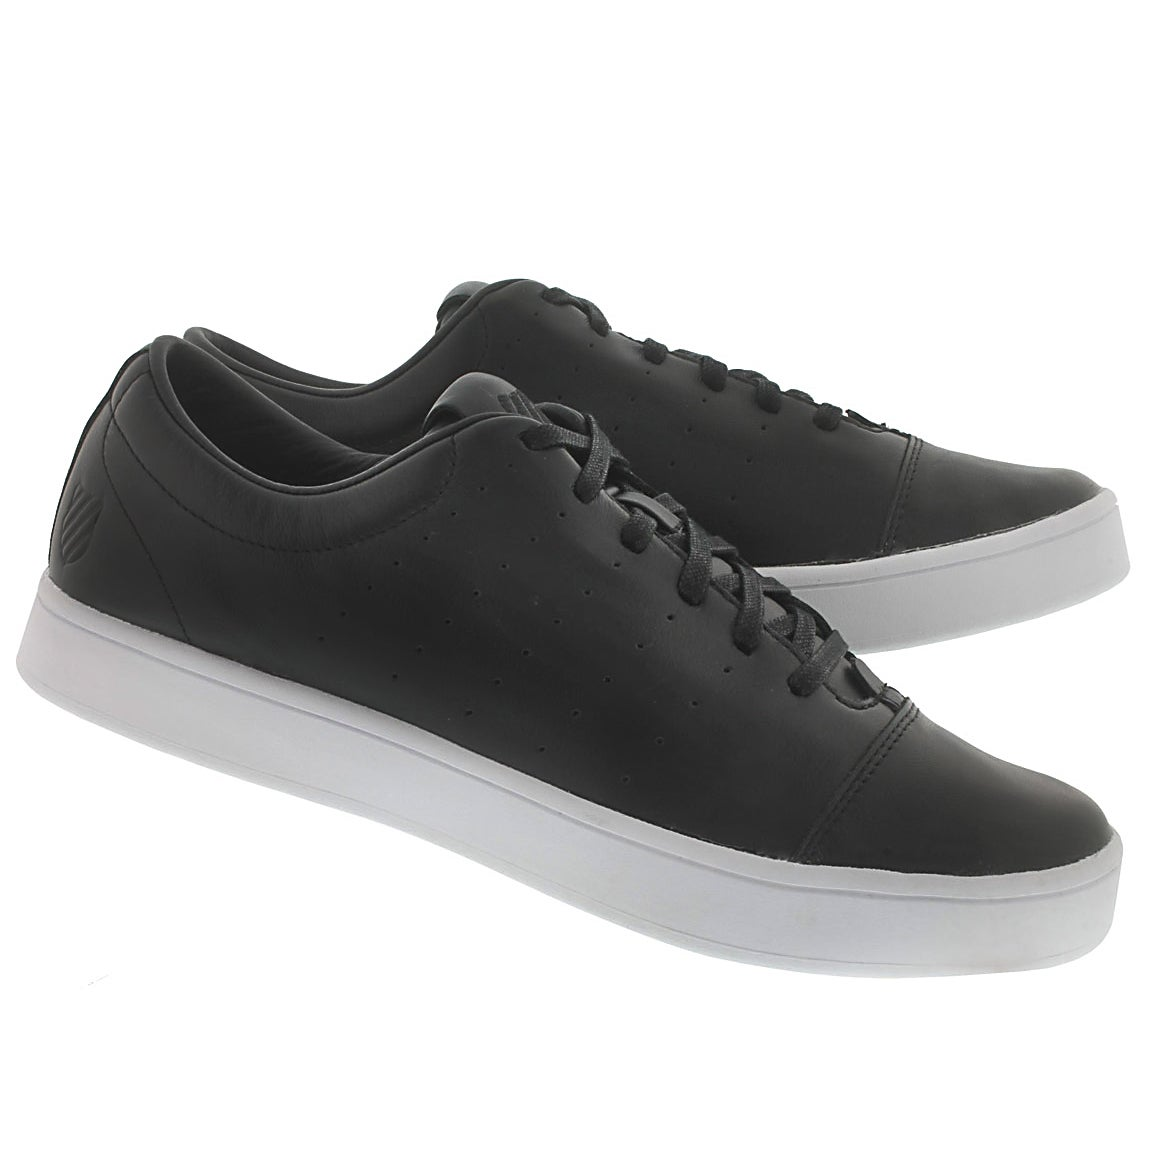 Mns Washburn black fashion sneaker